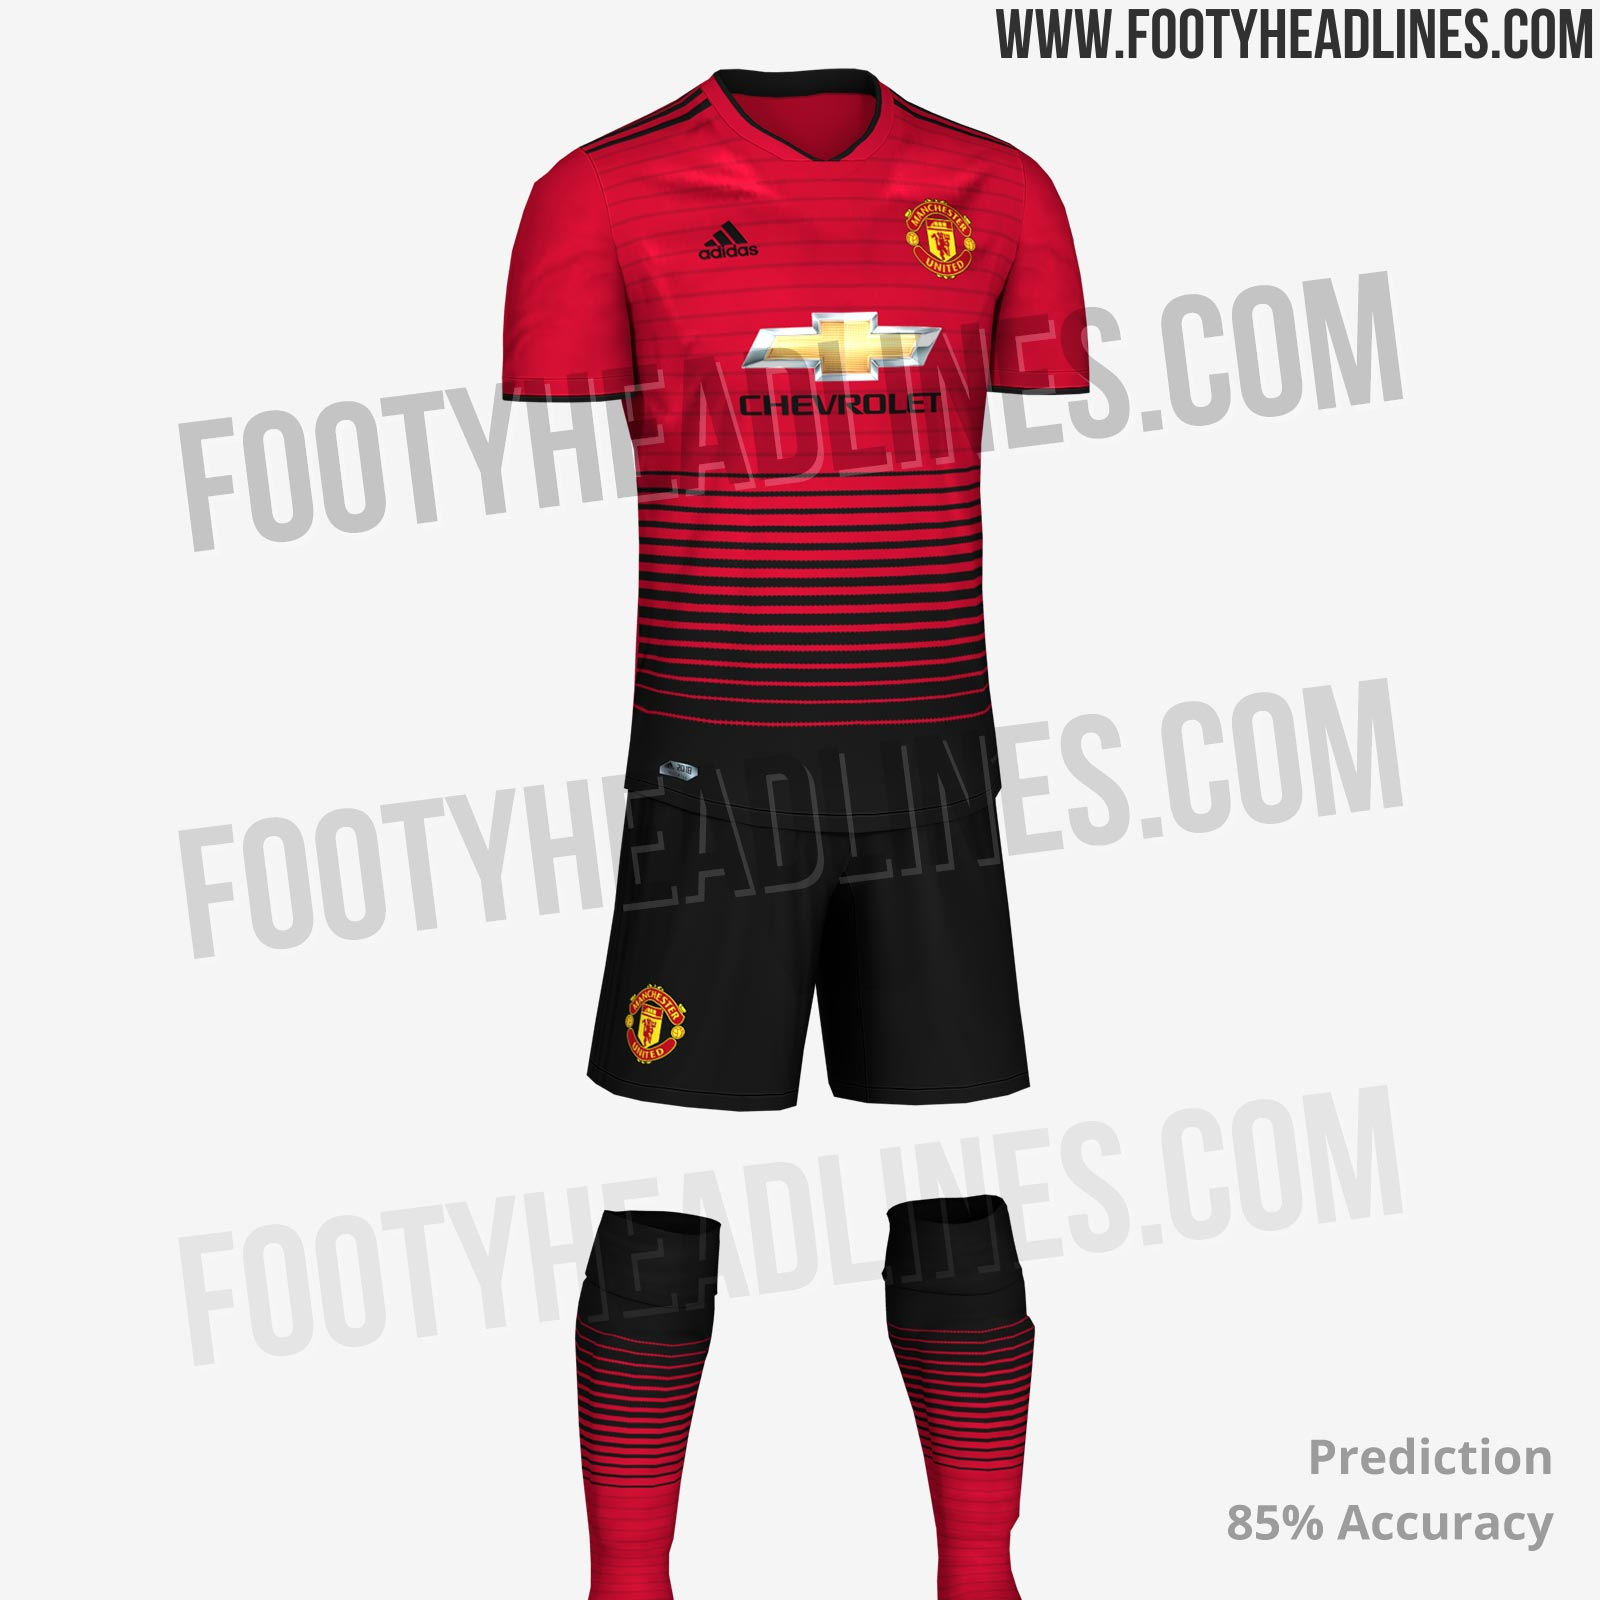 manchester-united-18-19-home-kit-2.jpg